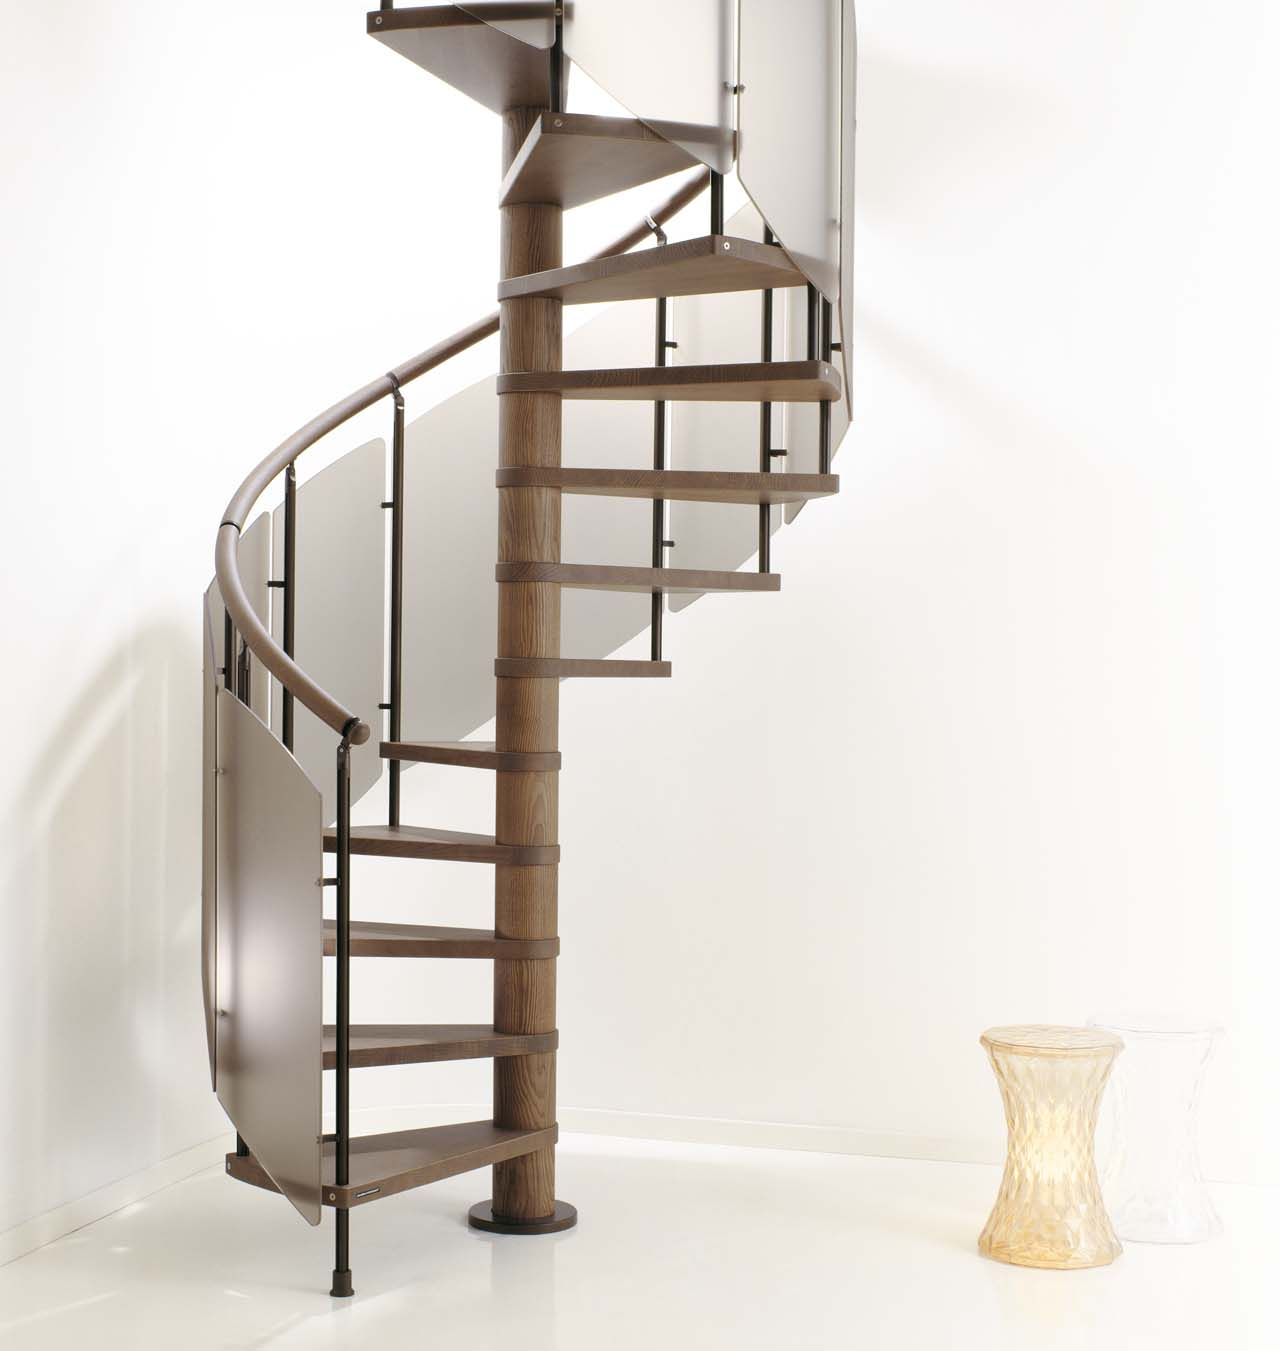 Beautiful staircase design gallery 10 photos modern for Spiral stair design